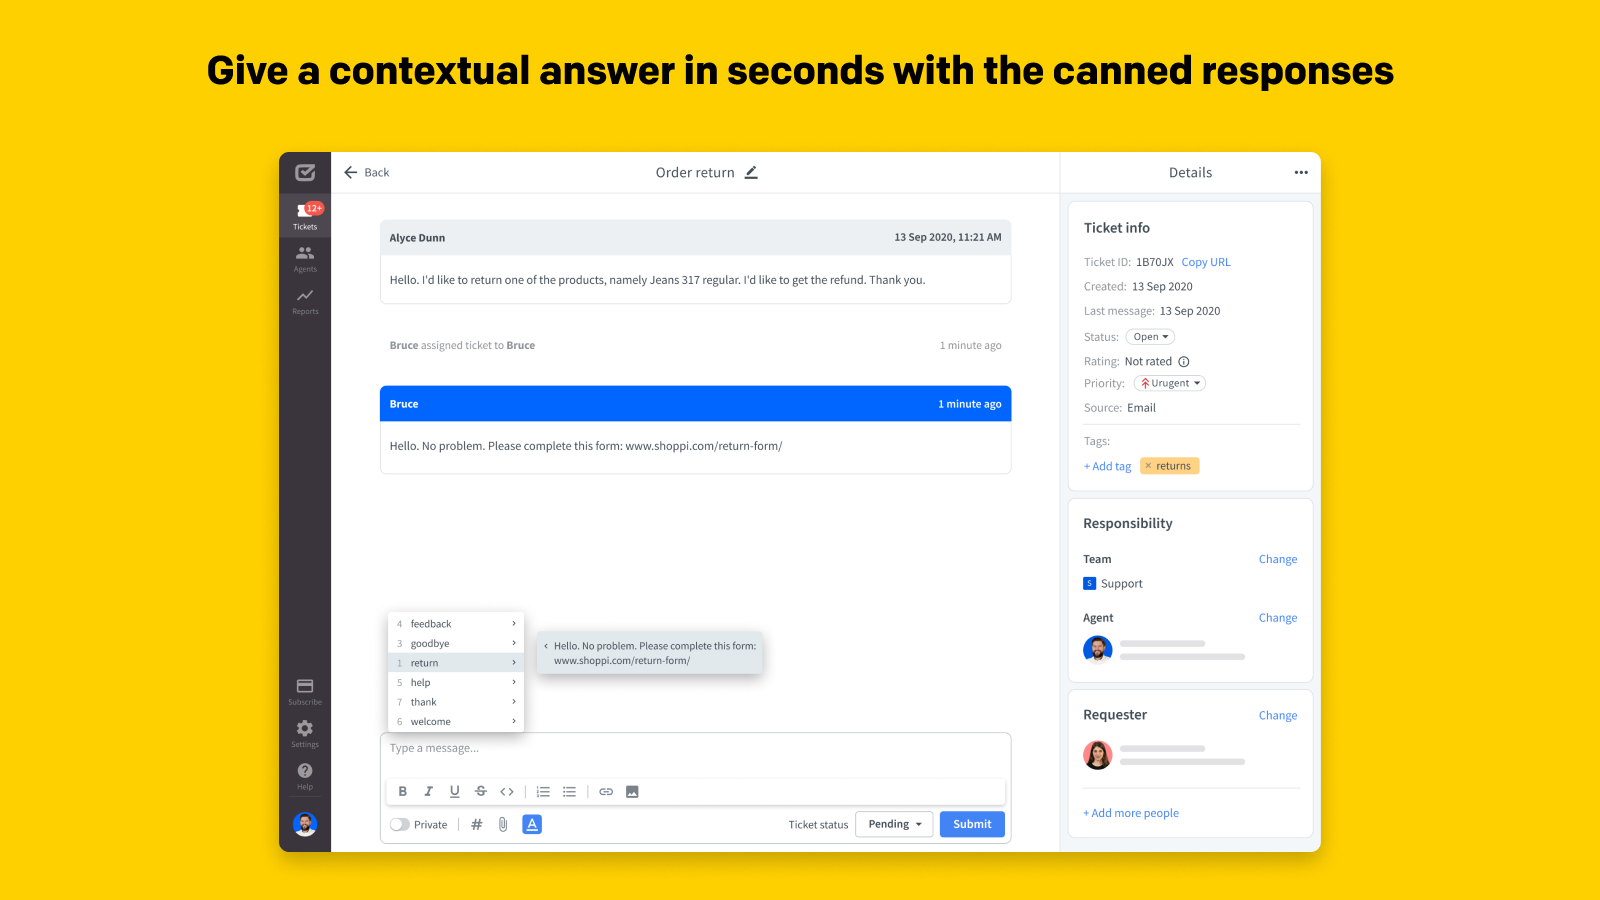 Give a contextual answer in seconds with the canned responses